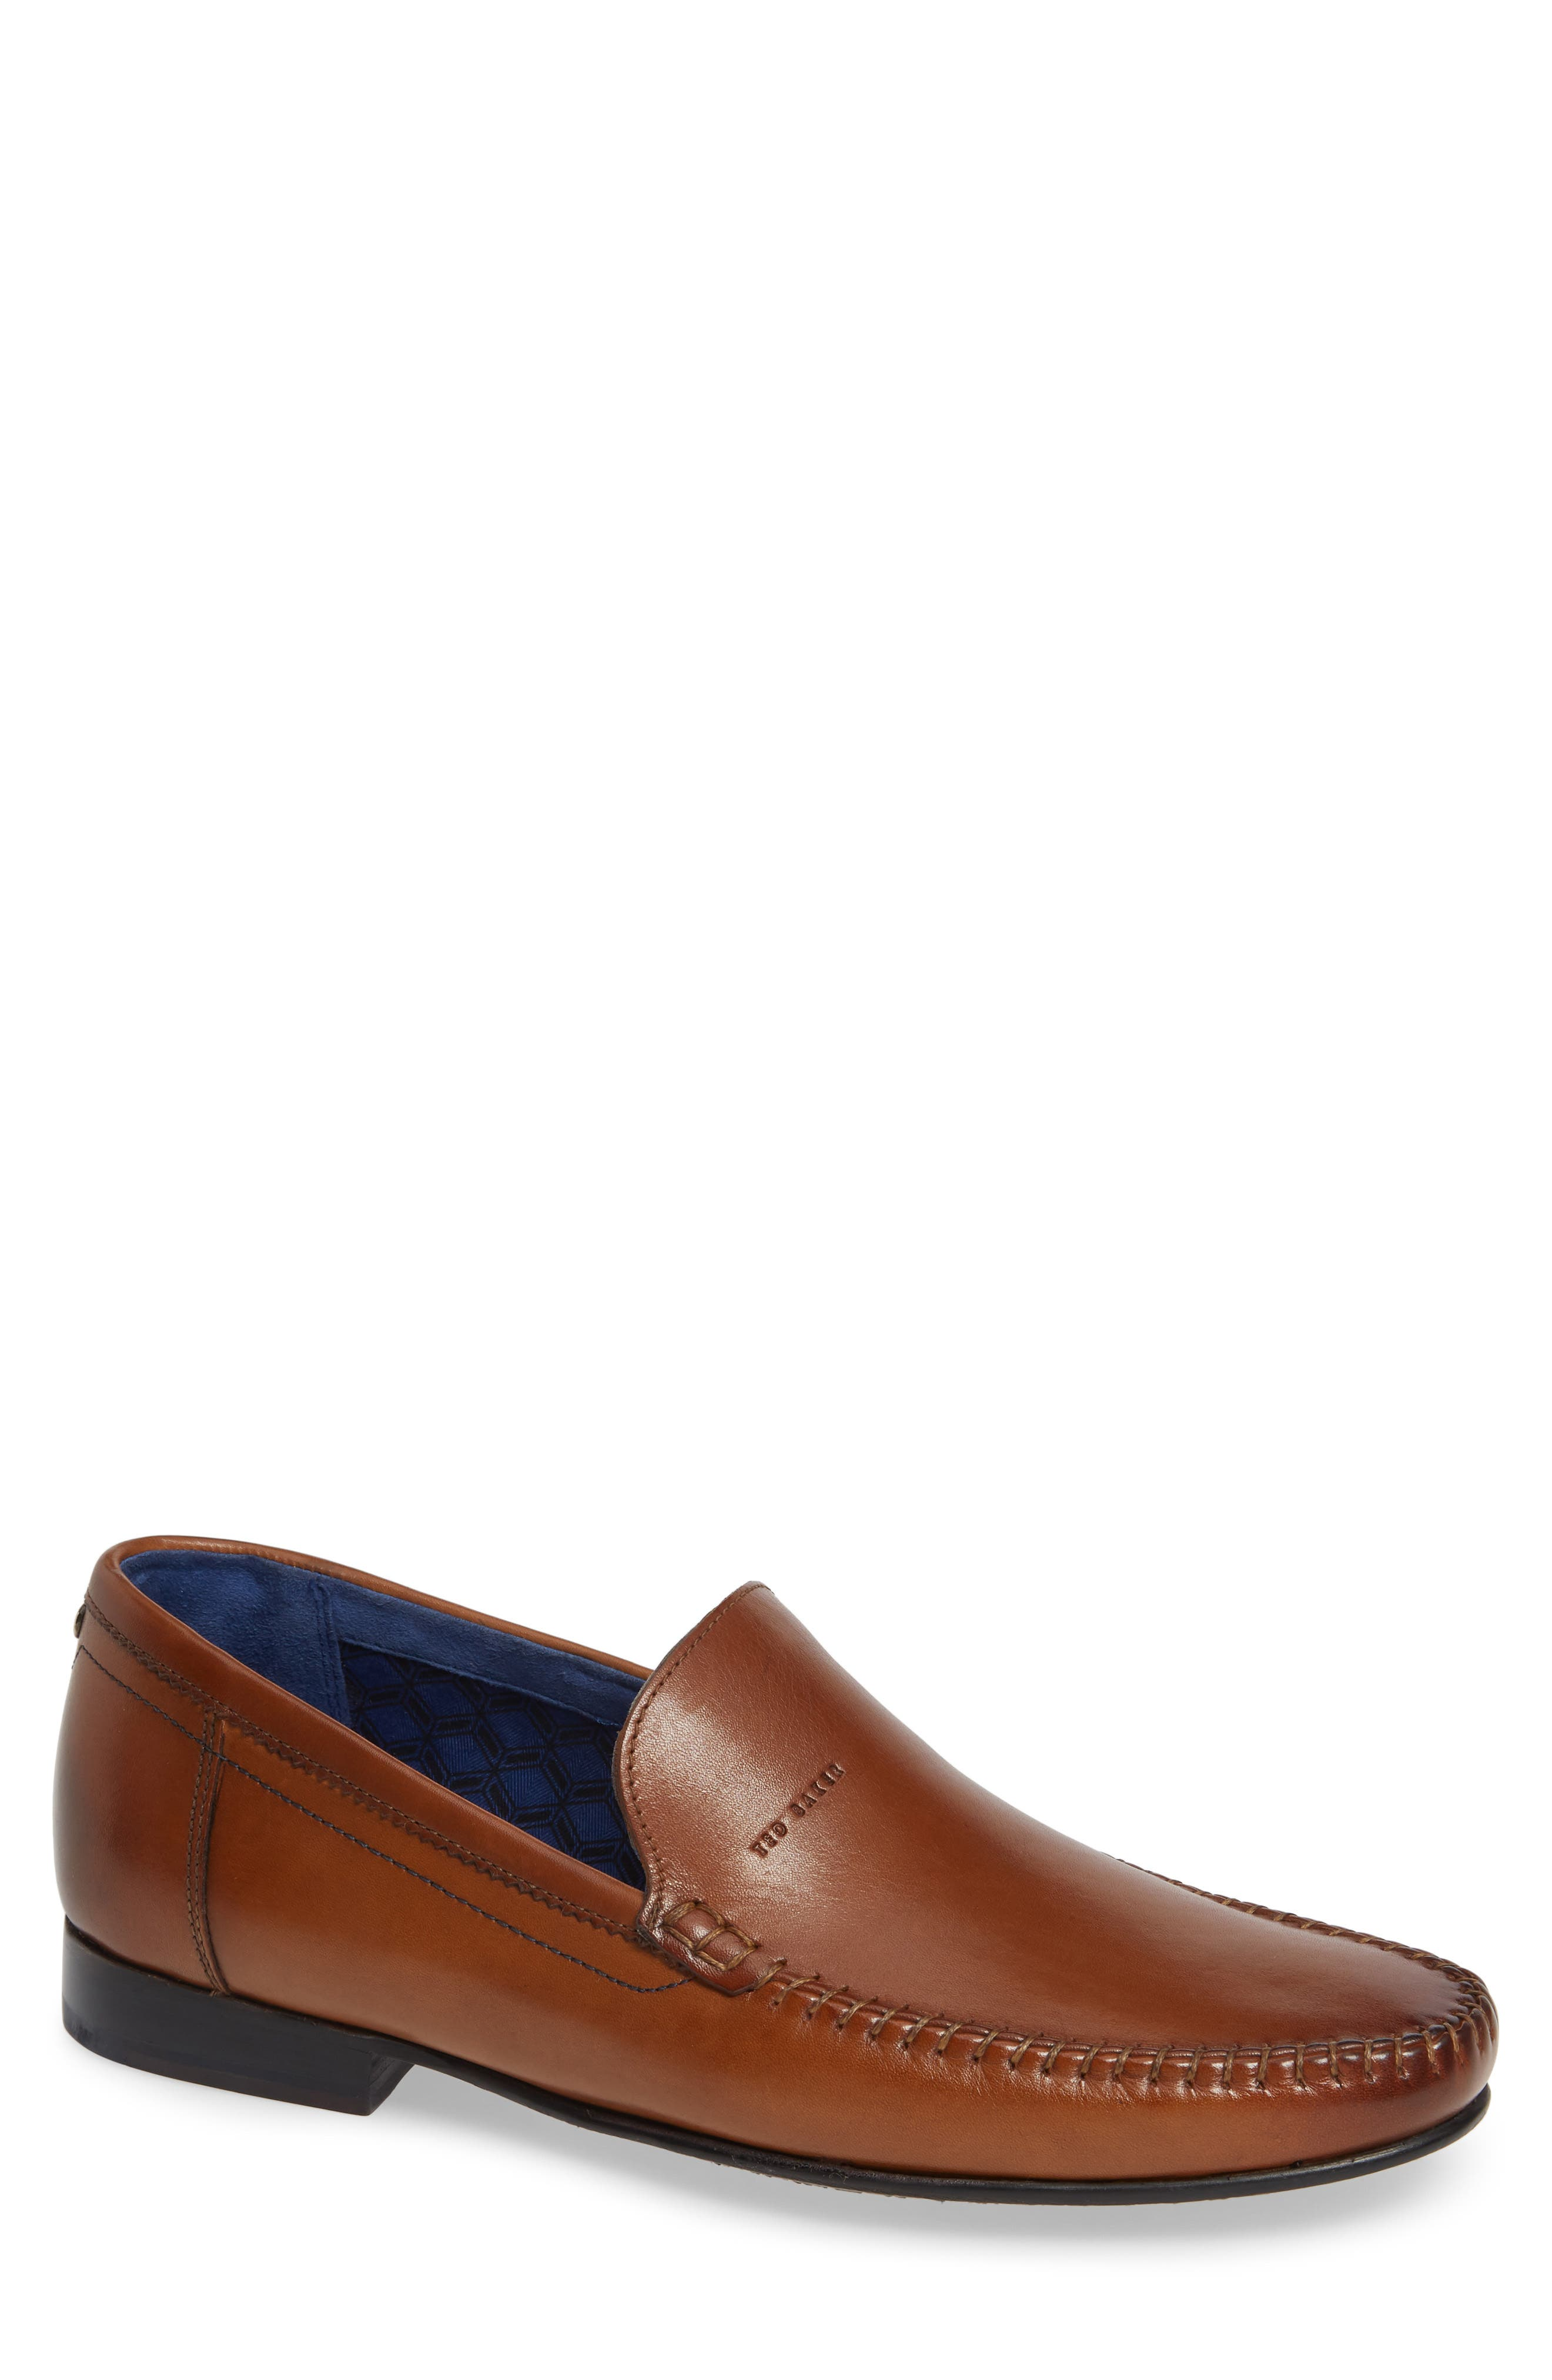 bdbe16d3ce9 Ted Baker Shoes for Men